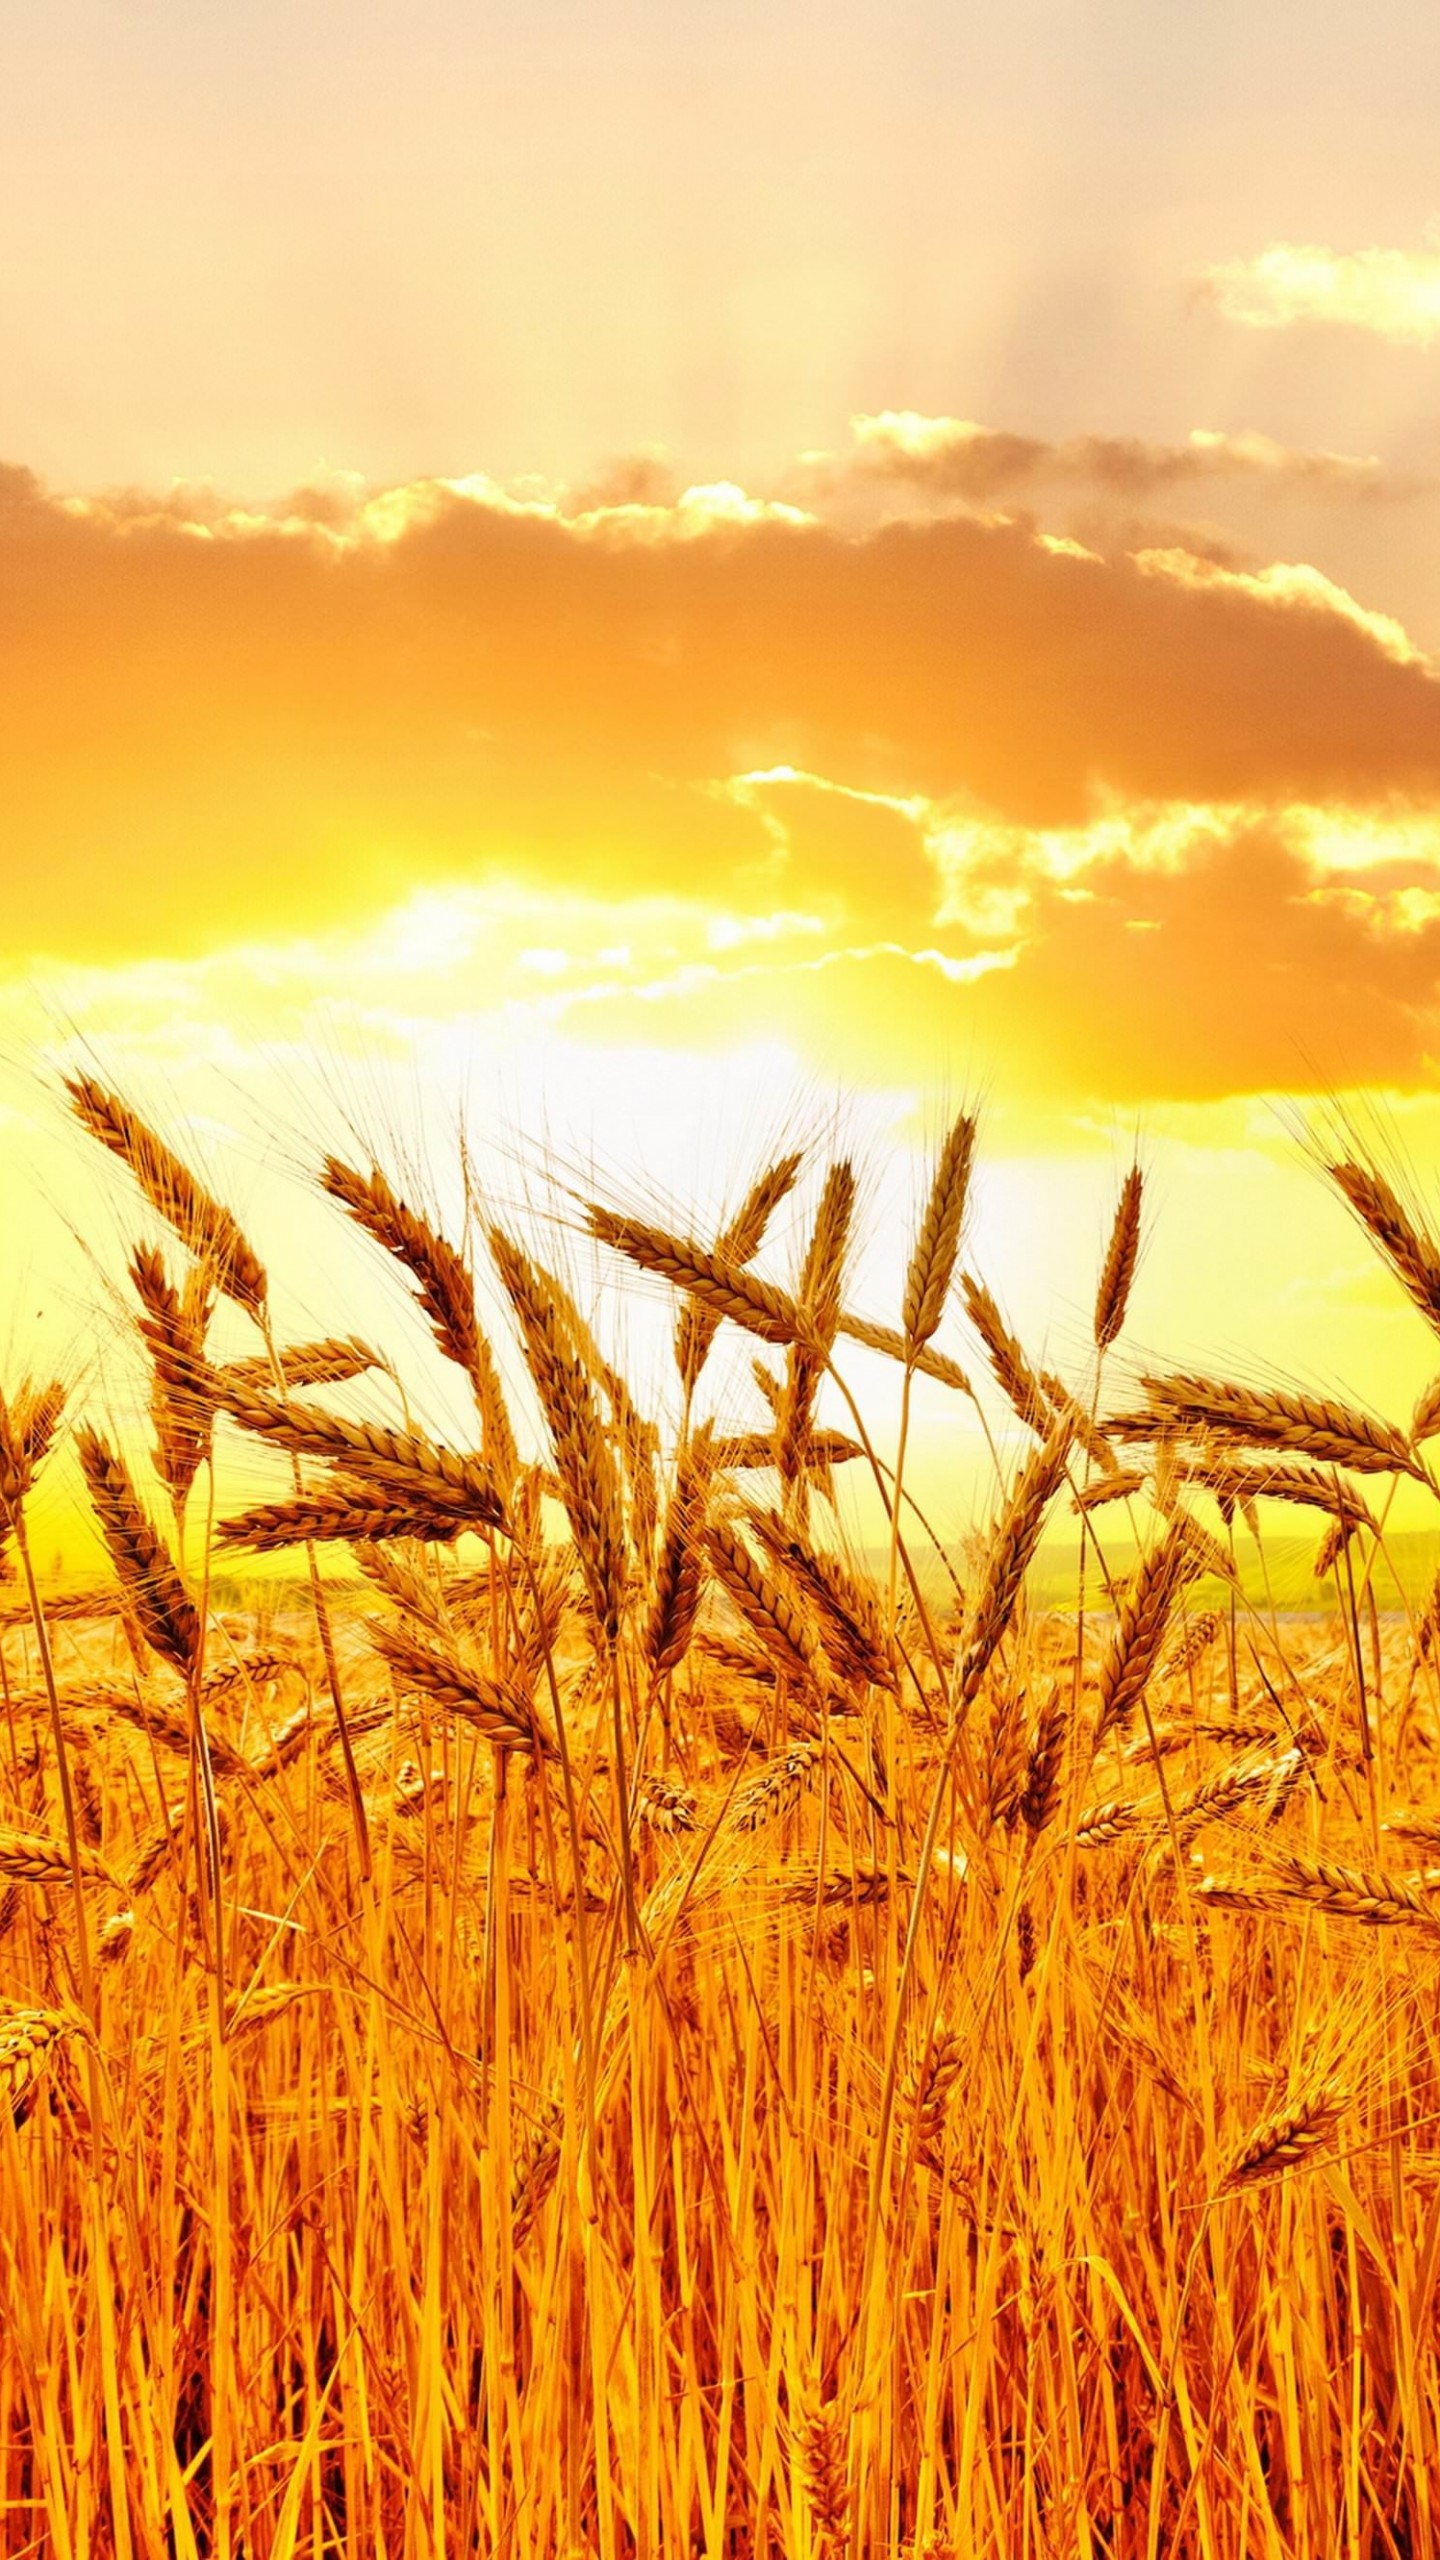 Golden Wheat Field At Sunset Wallpaper for SAMSUNG Galaxy S6